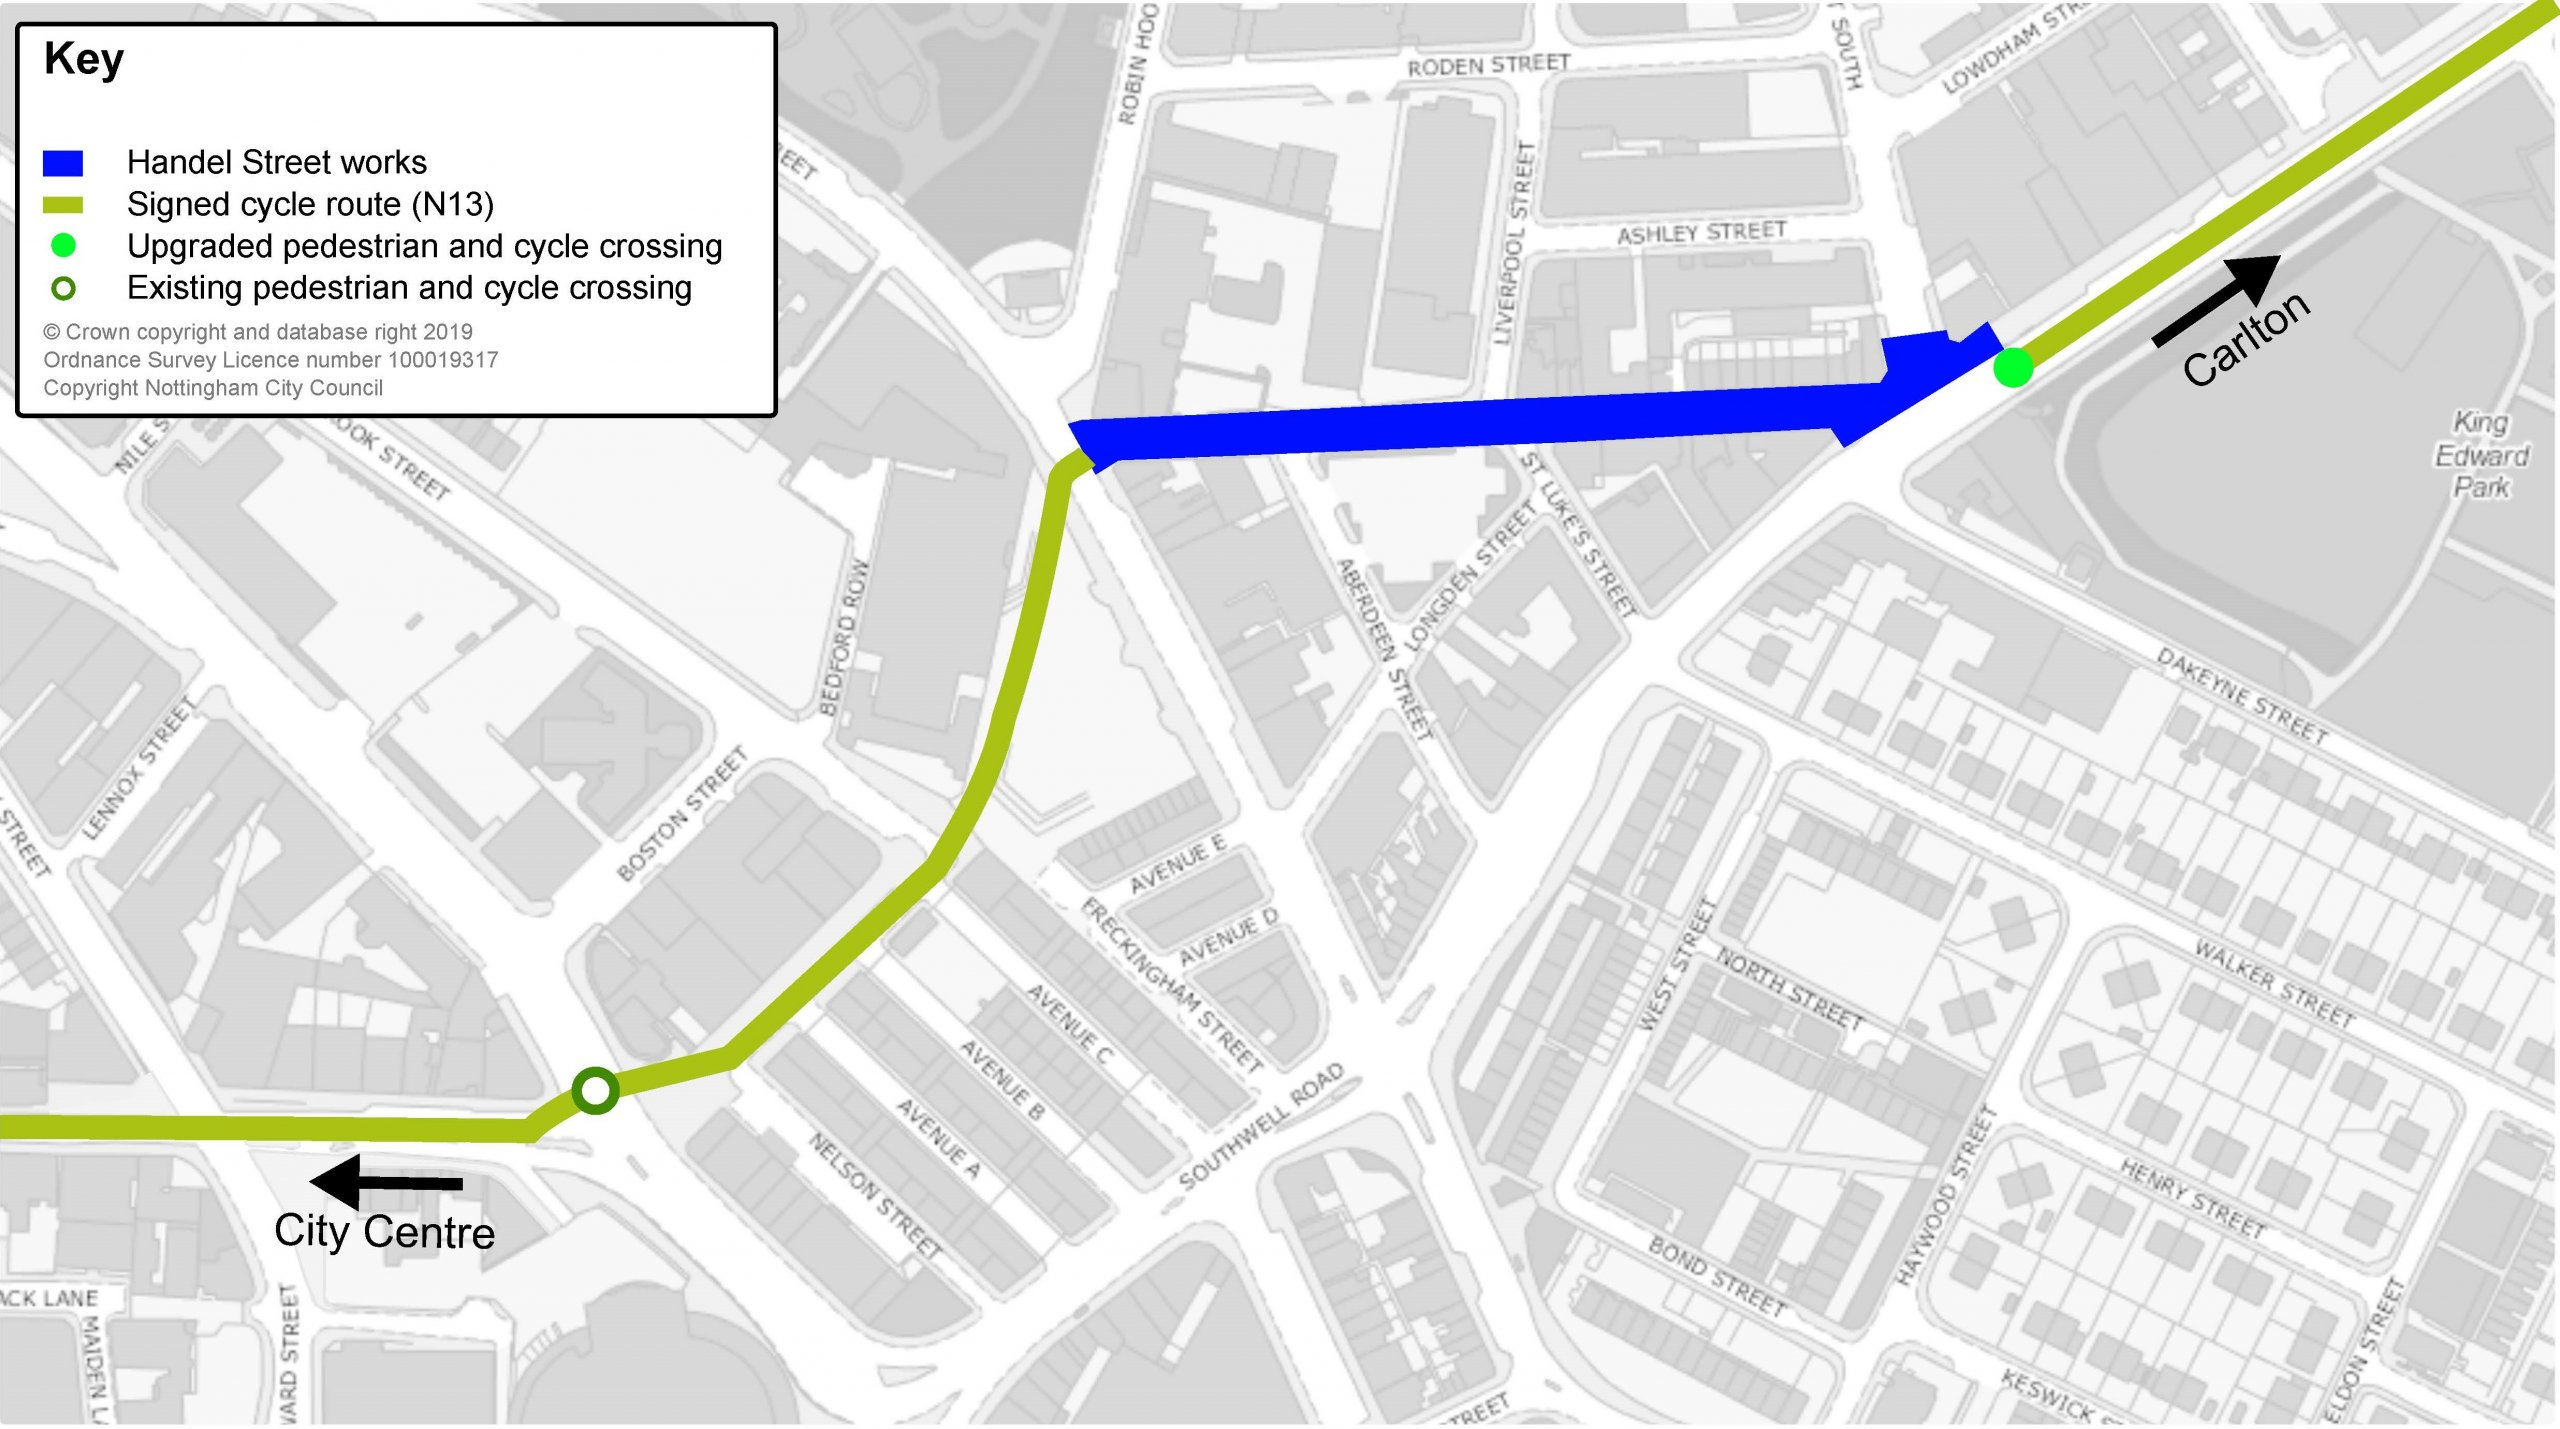 map of the construction happening along Handel Street